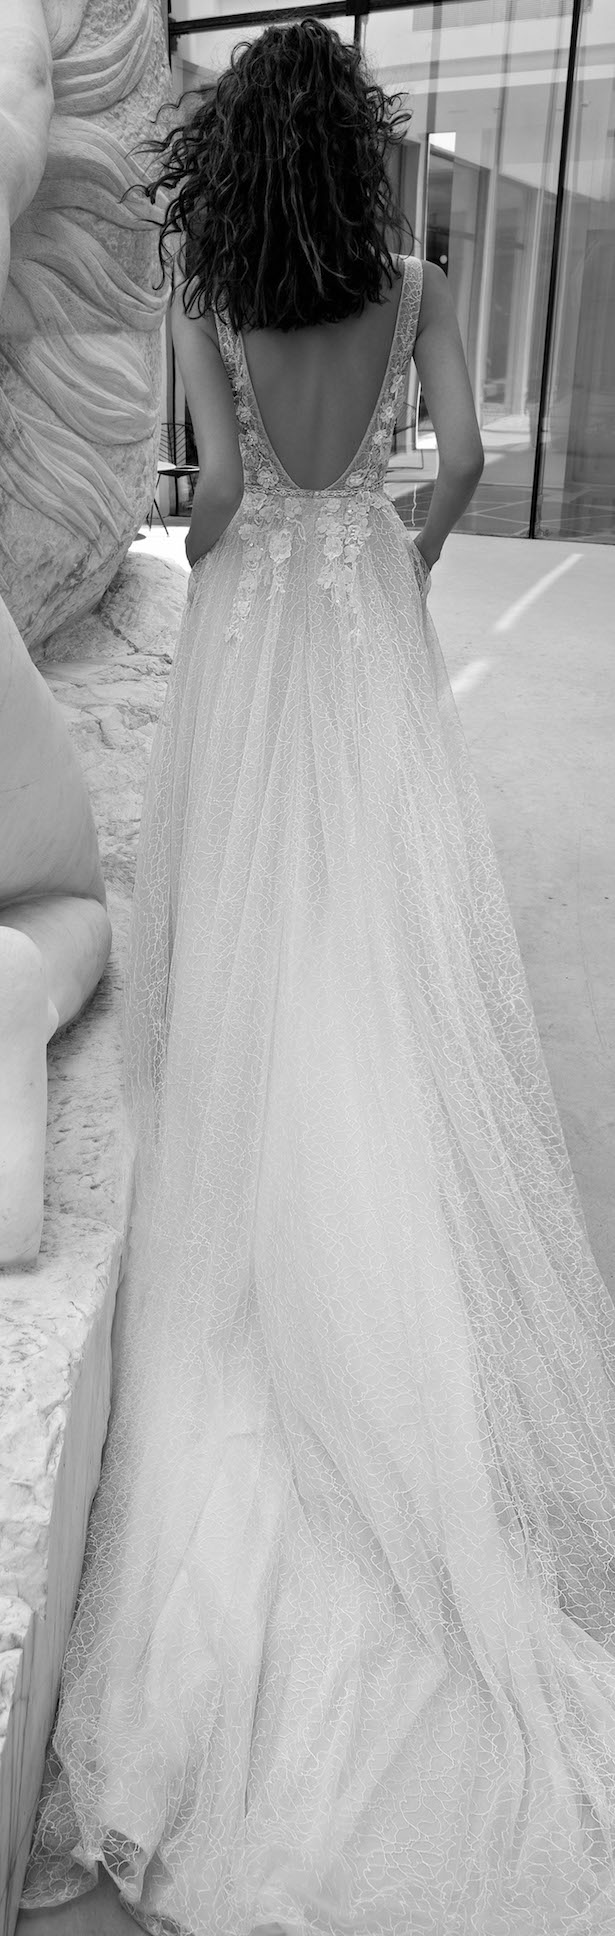 Wedding Dress by FLORA Bridal 2017 Collection